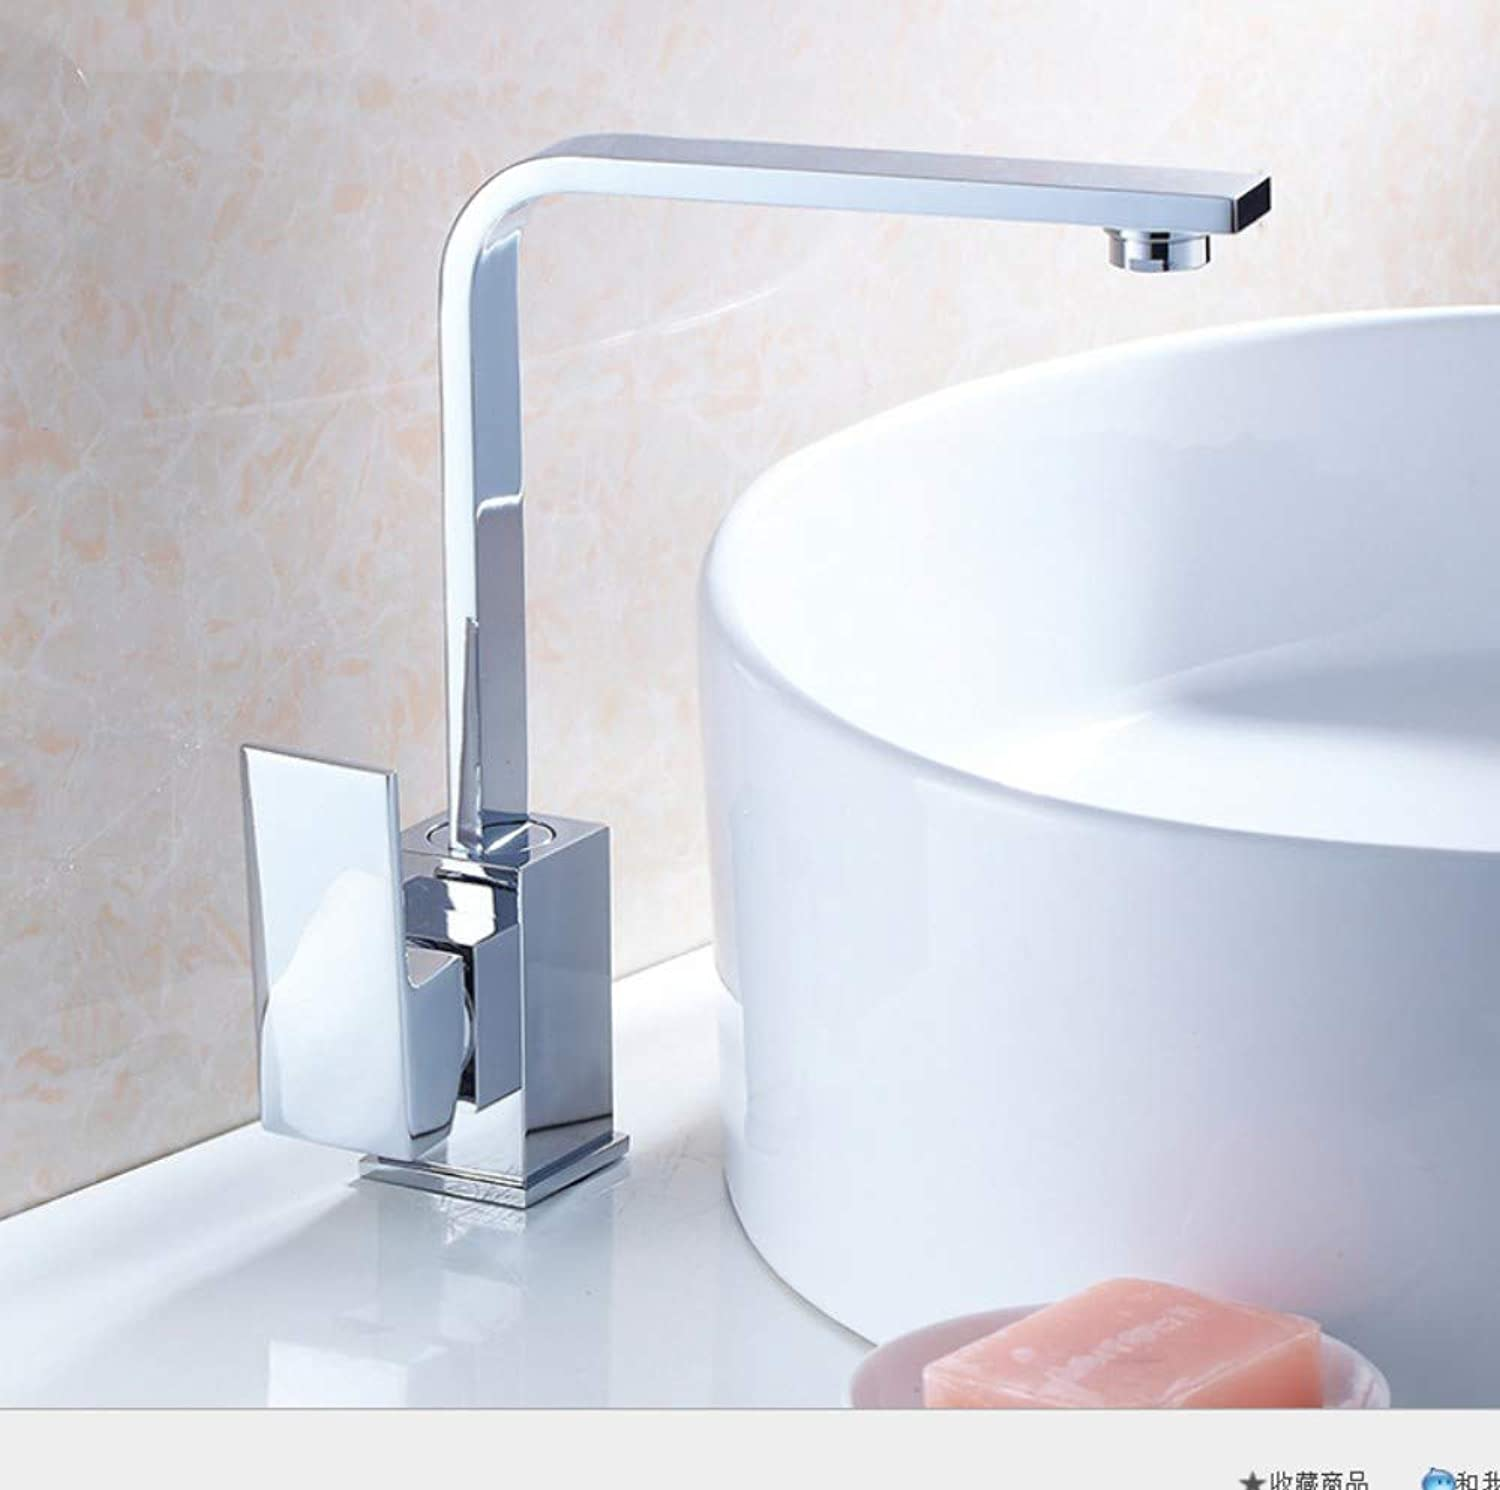 Bathroom Sink Basin Lever Mixer Tap Kitchen Faucet Sink Dishwash Basin Table Basin Cold and Hot Water Faucet Square Flat Pipe redating Water